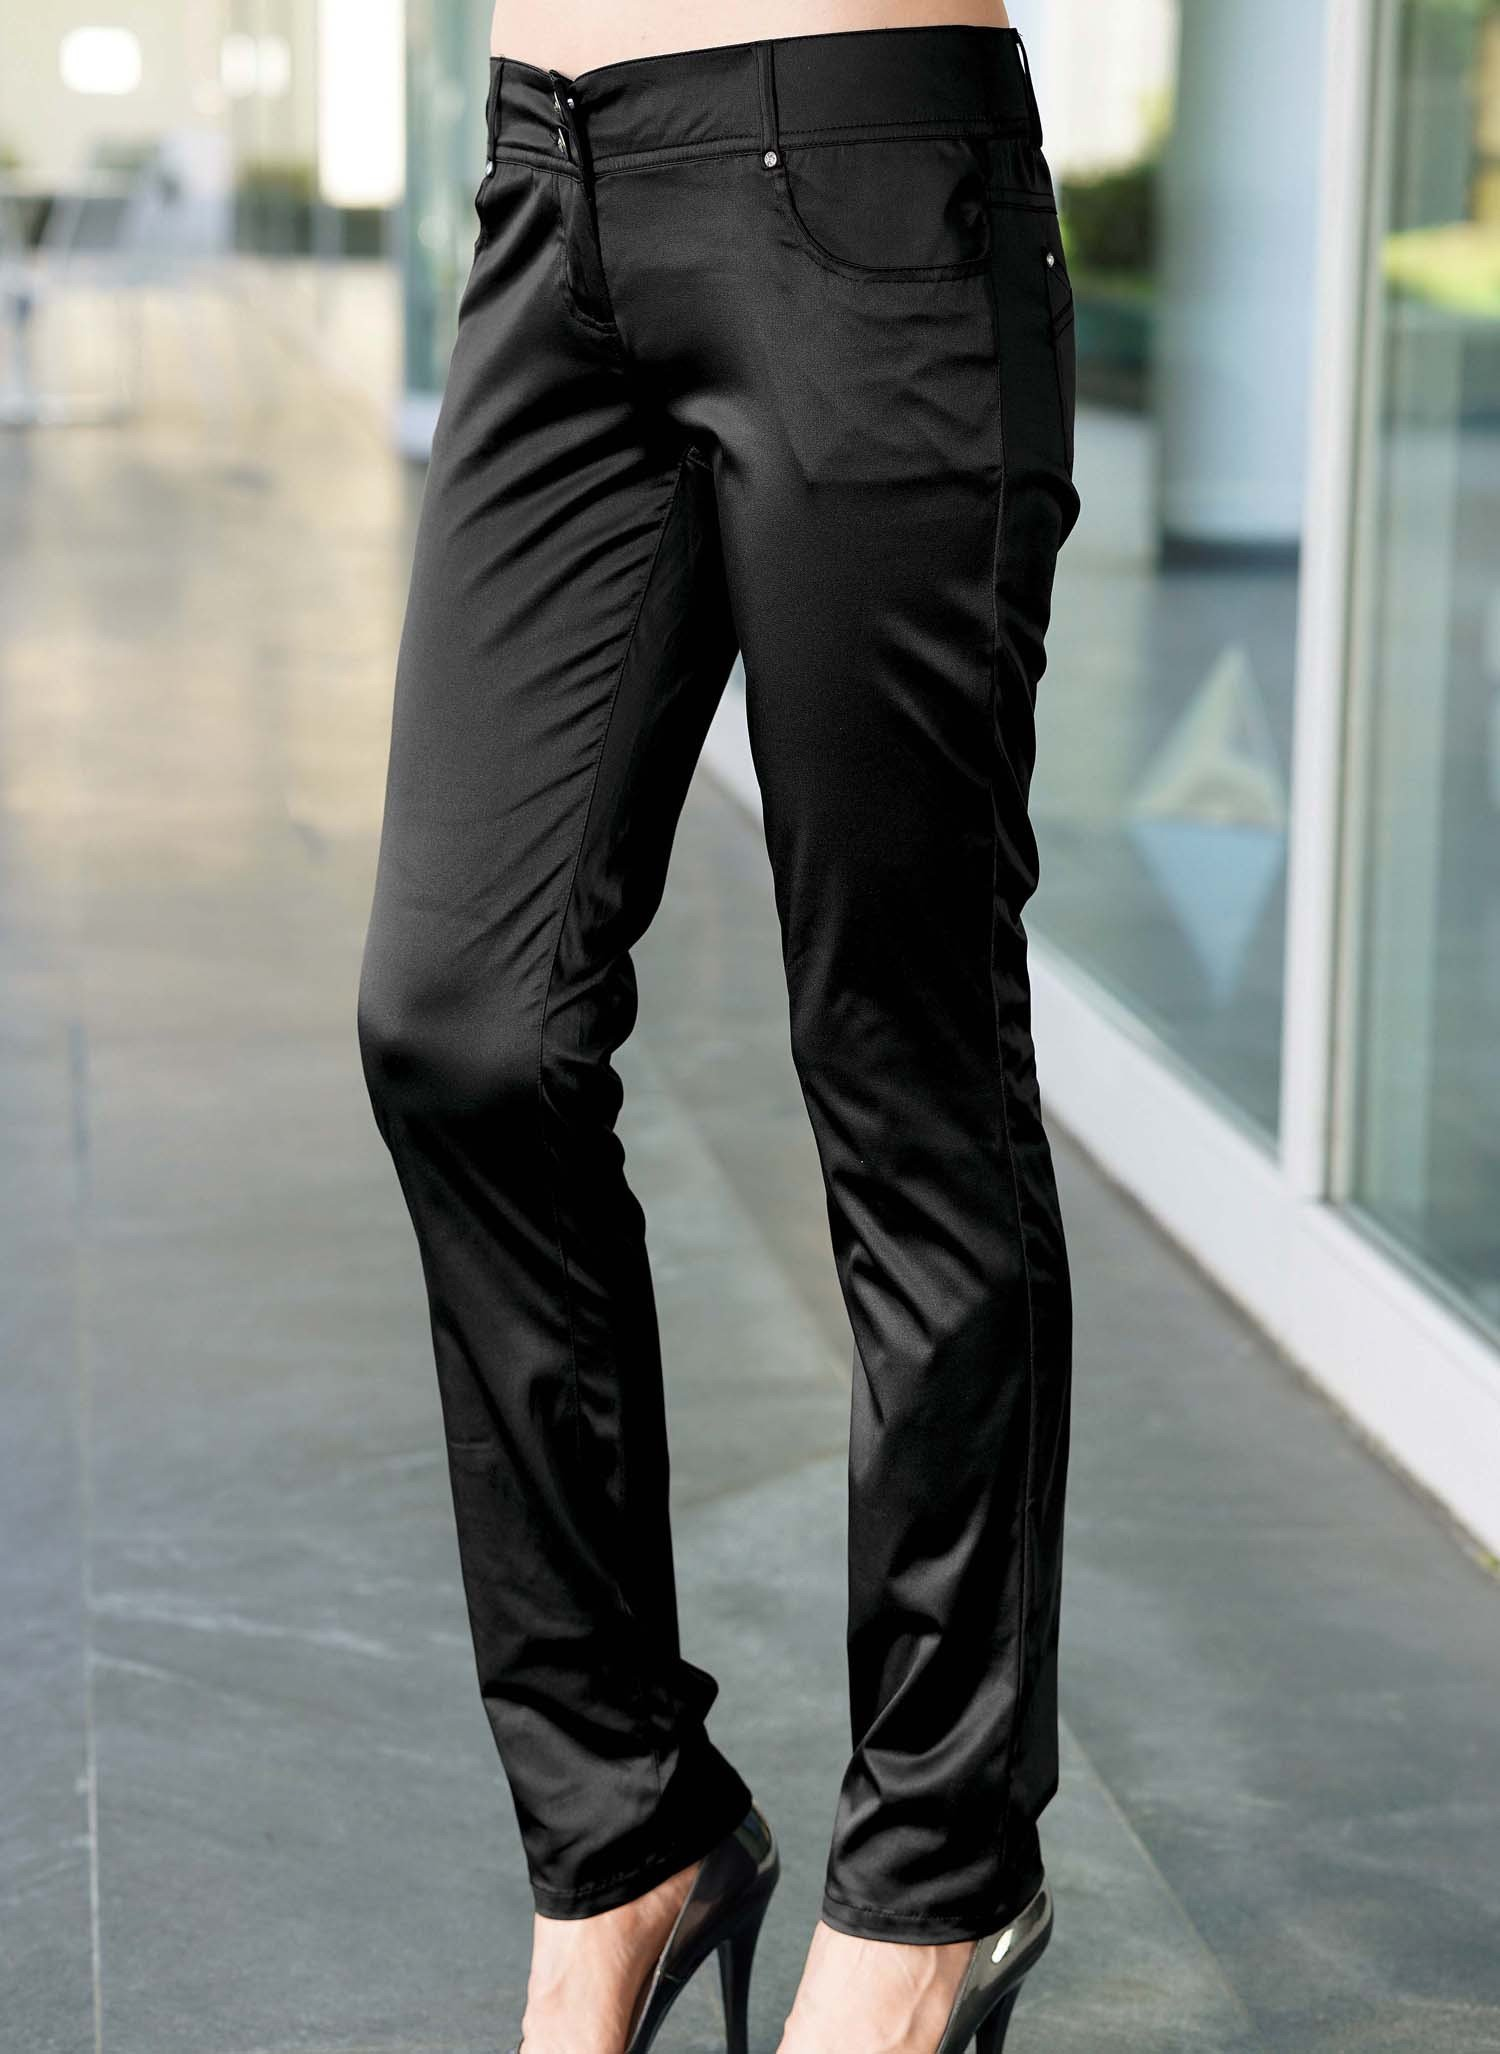 Pantalone in satin, 5 tasche